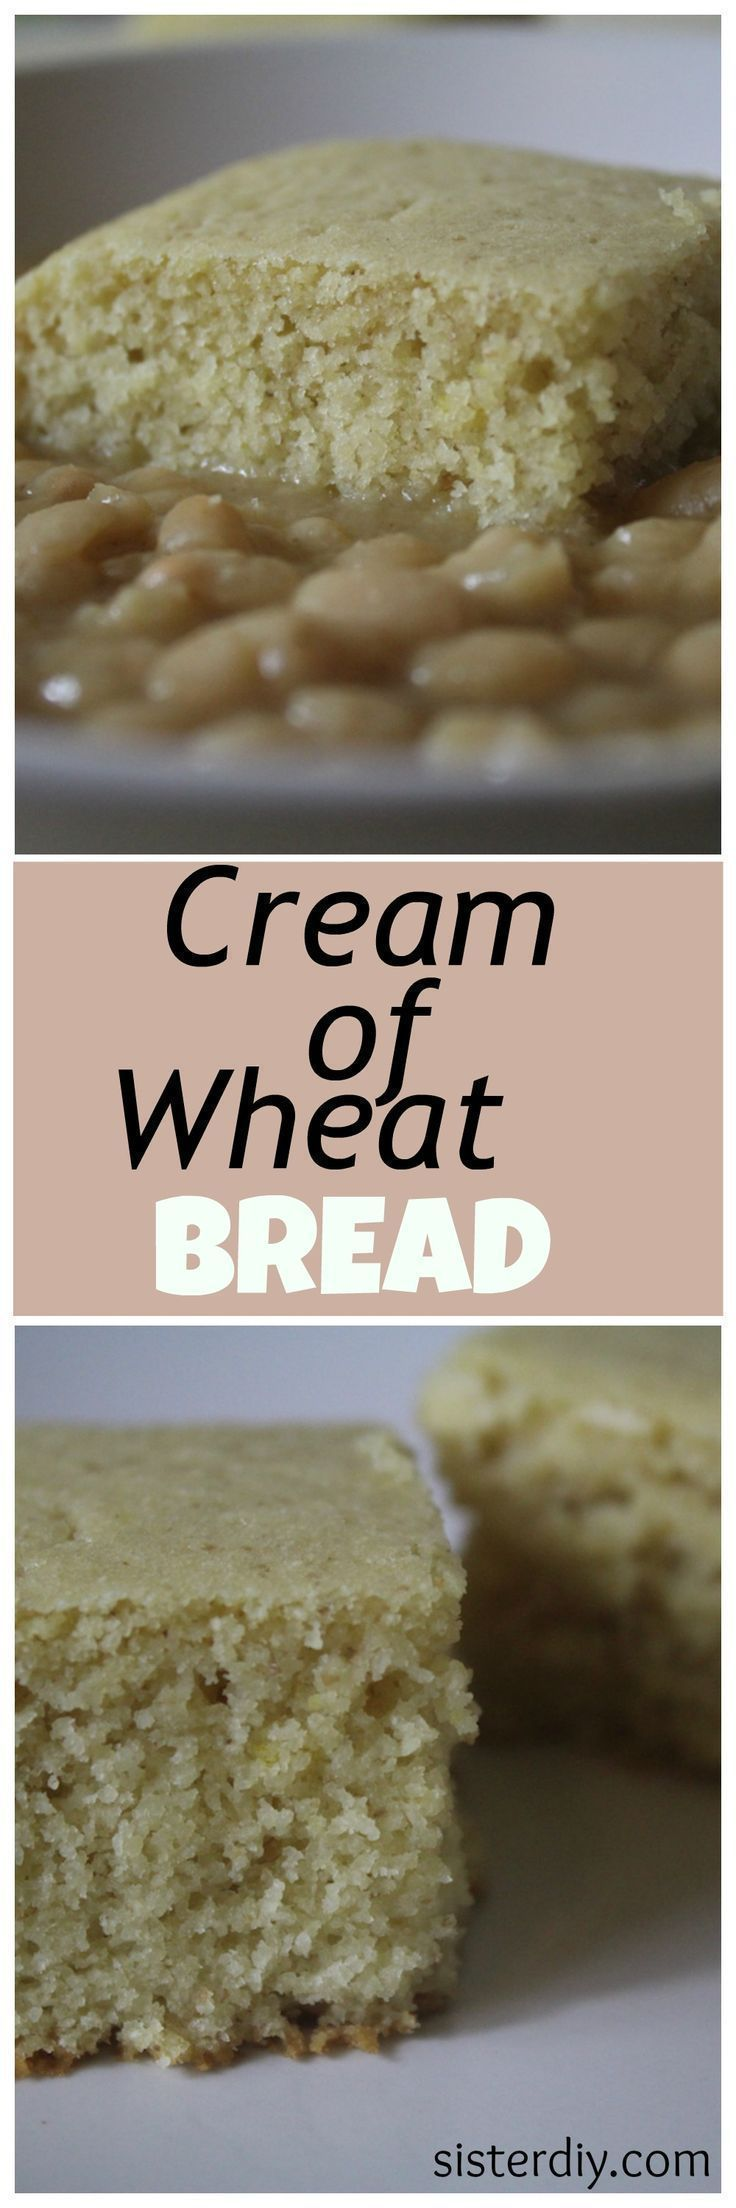 A delicious and healthy alternative to corn bread. This cream of wheat bread is incredible.